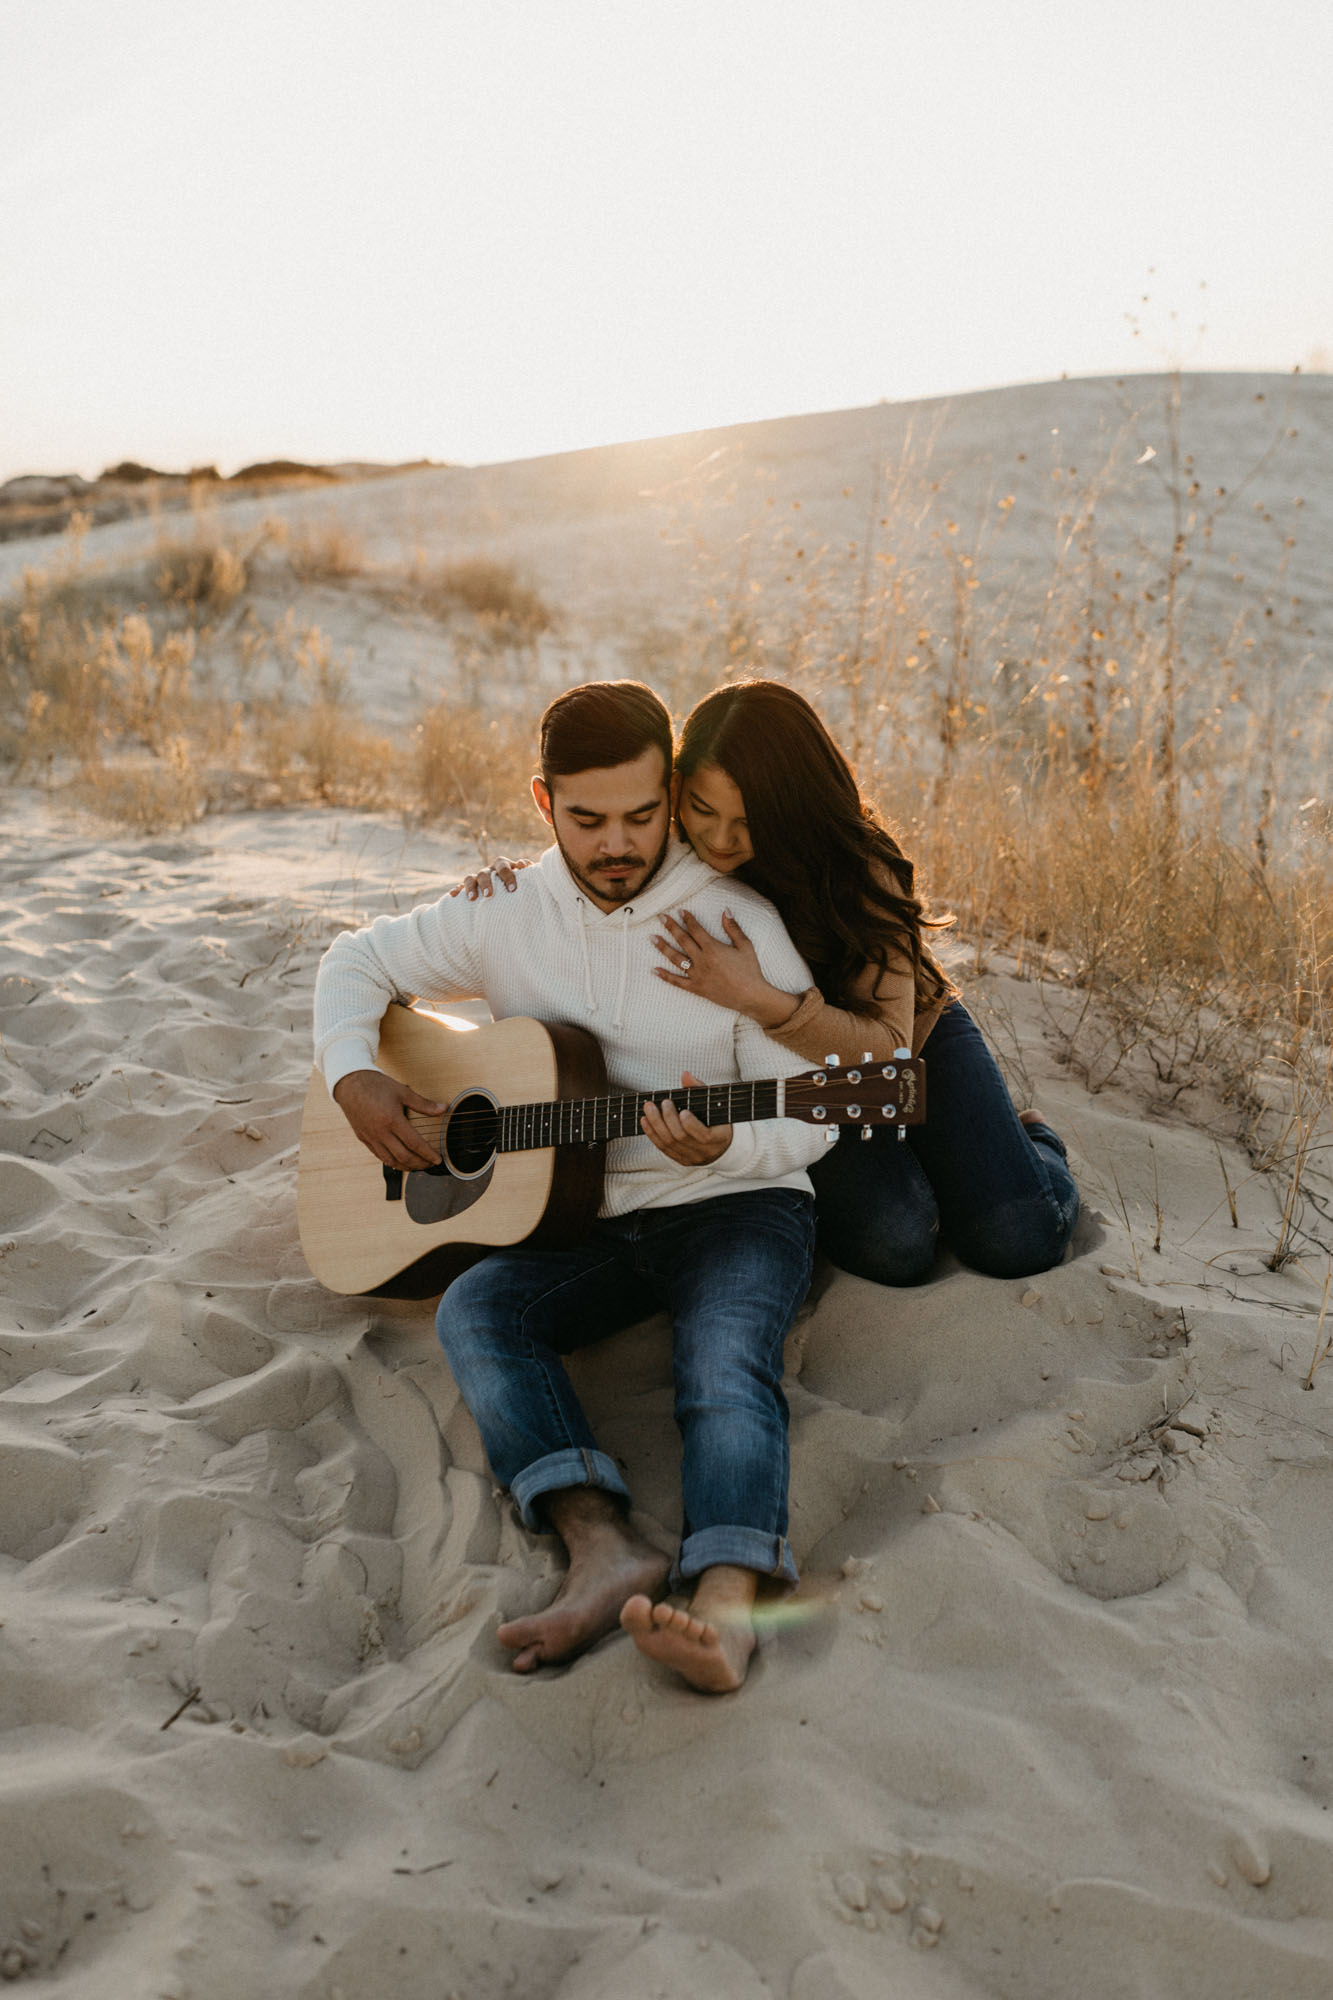 Romantic candid photo of couple playing guitar in the desert